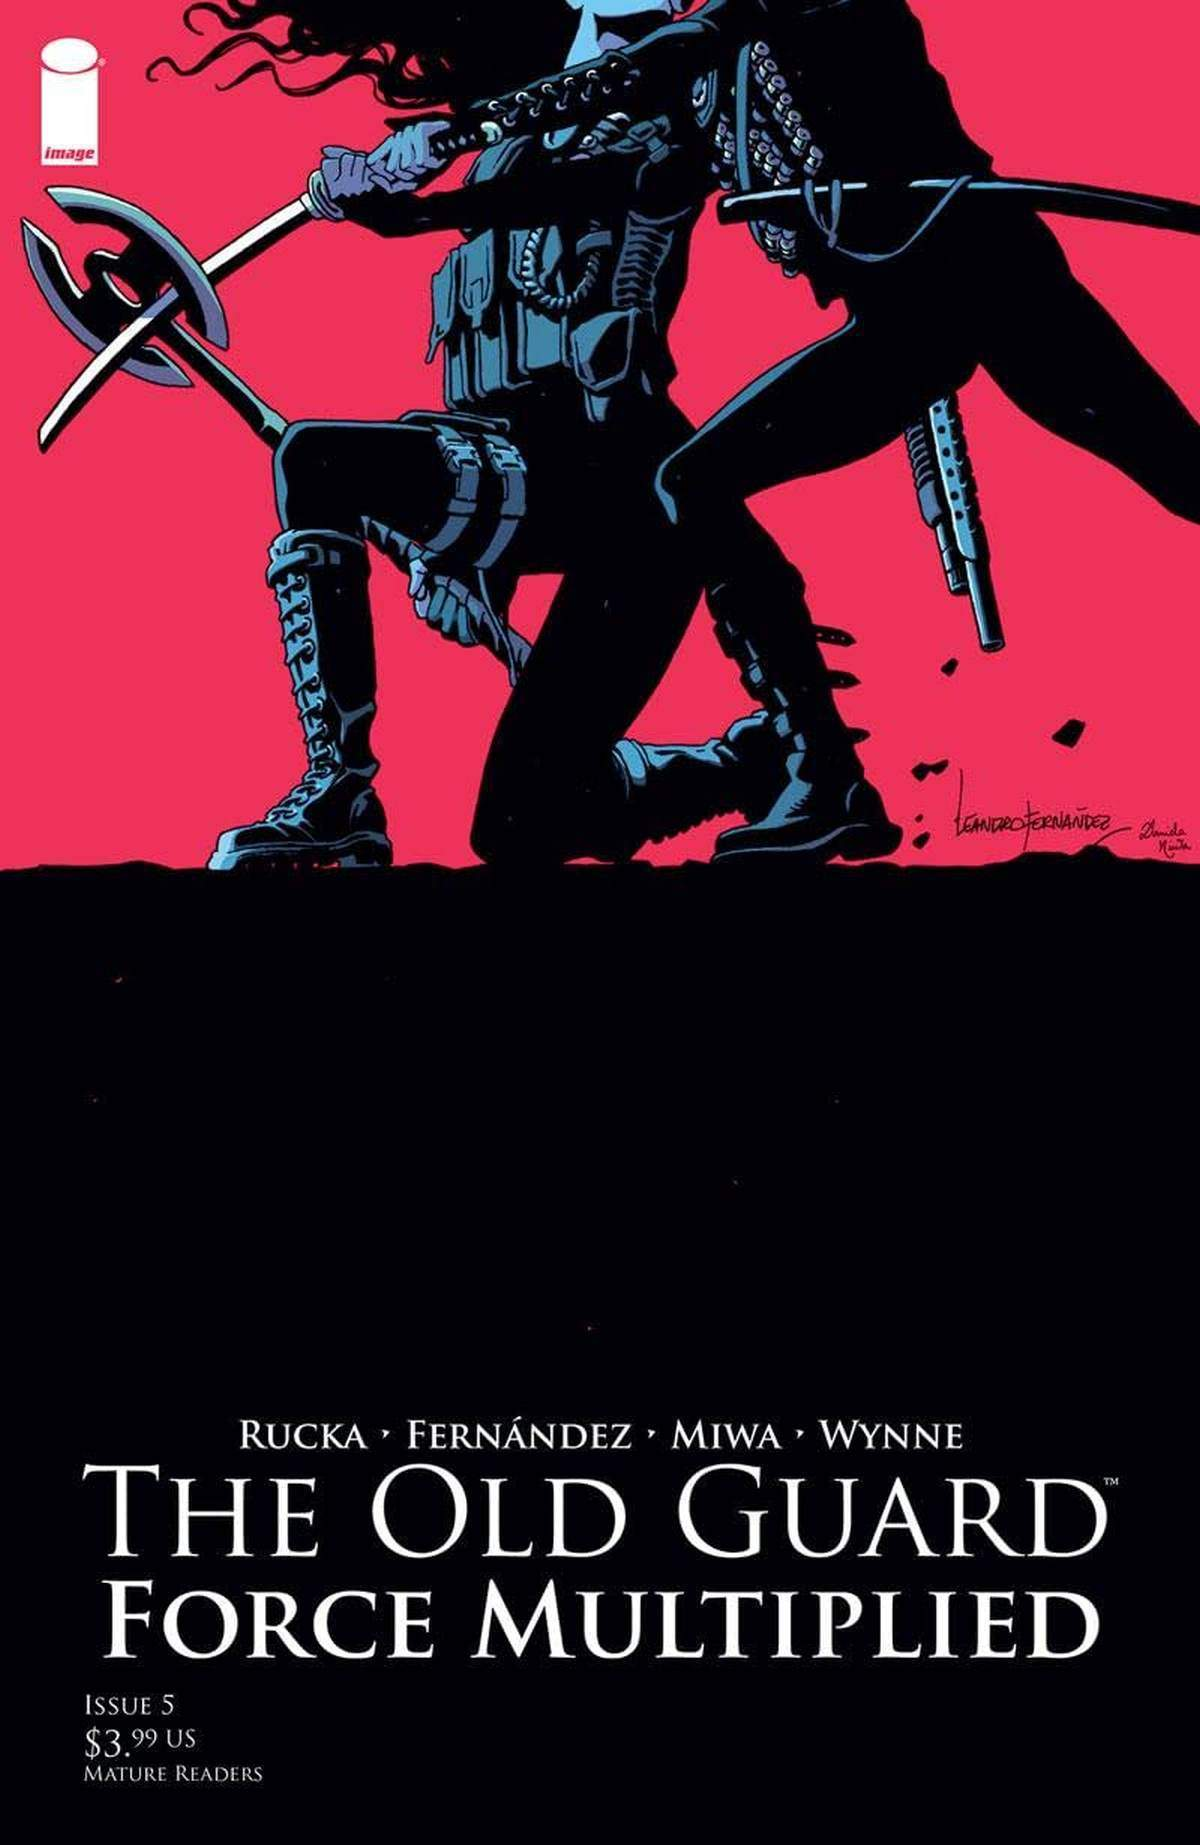 The Old Guard Force Multiplied #5